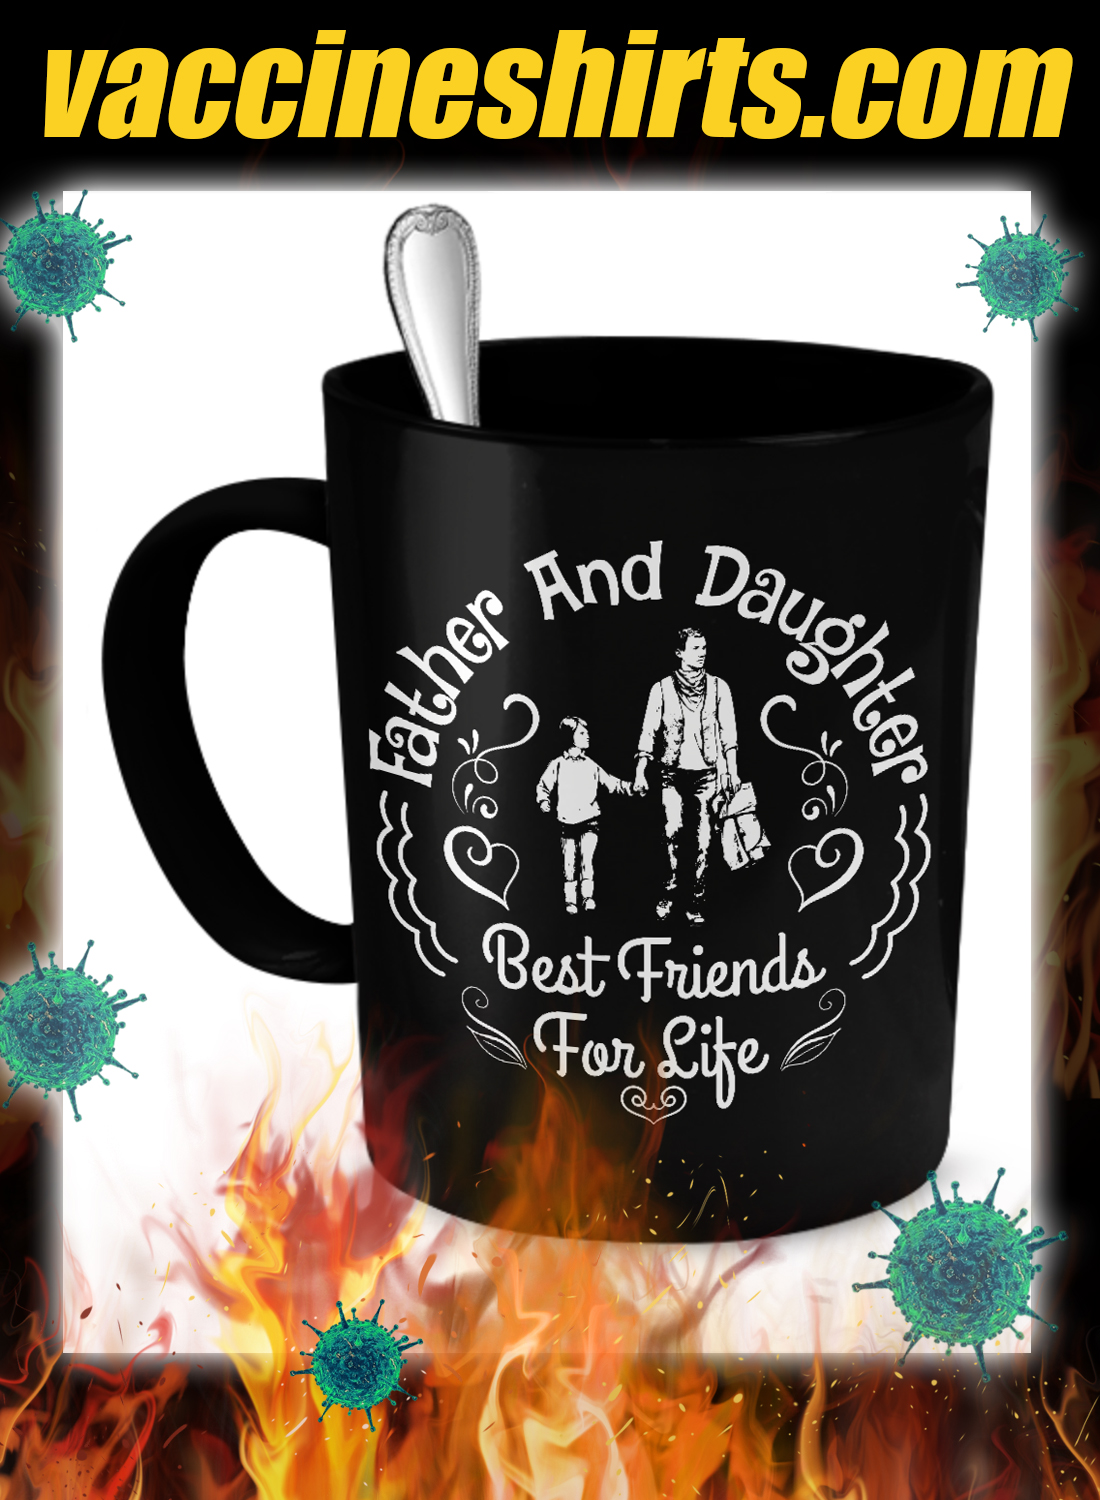 Father and daughter best friends for life mug - detail